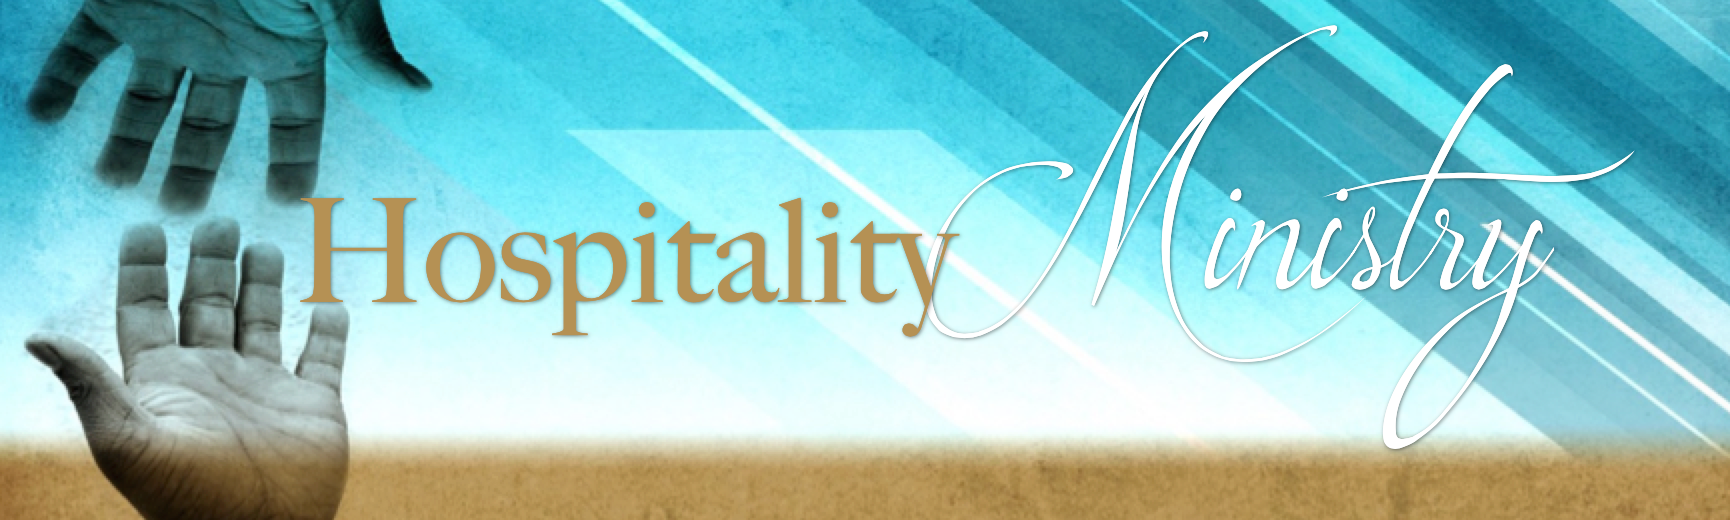 Hospitality-Ministry-Banner1